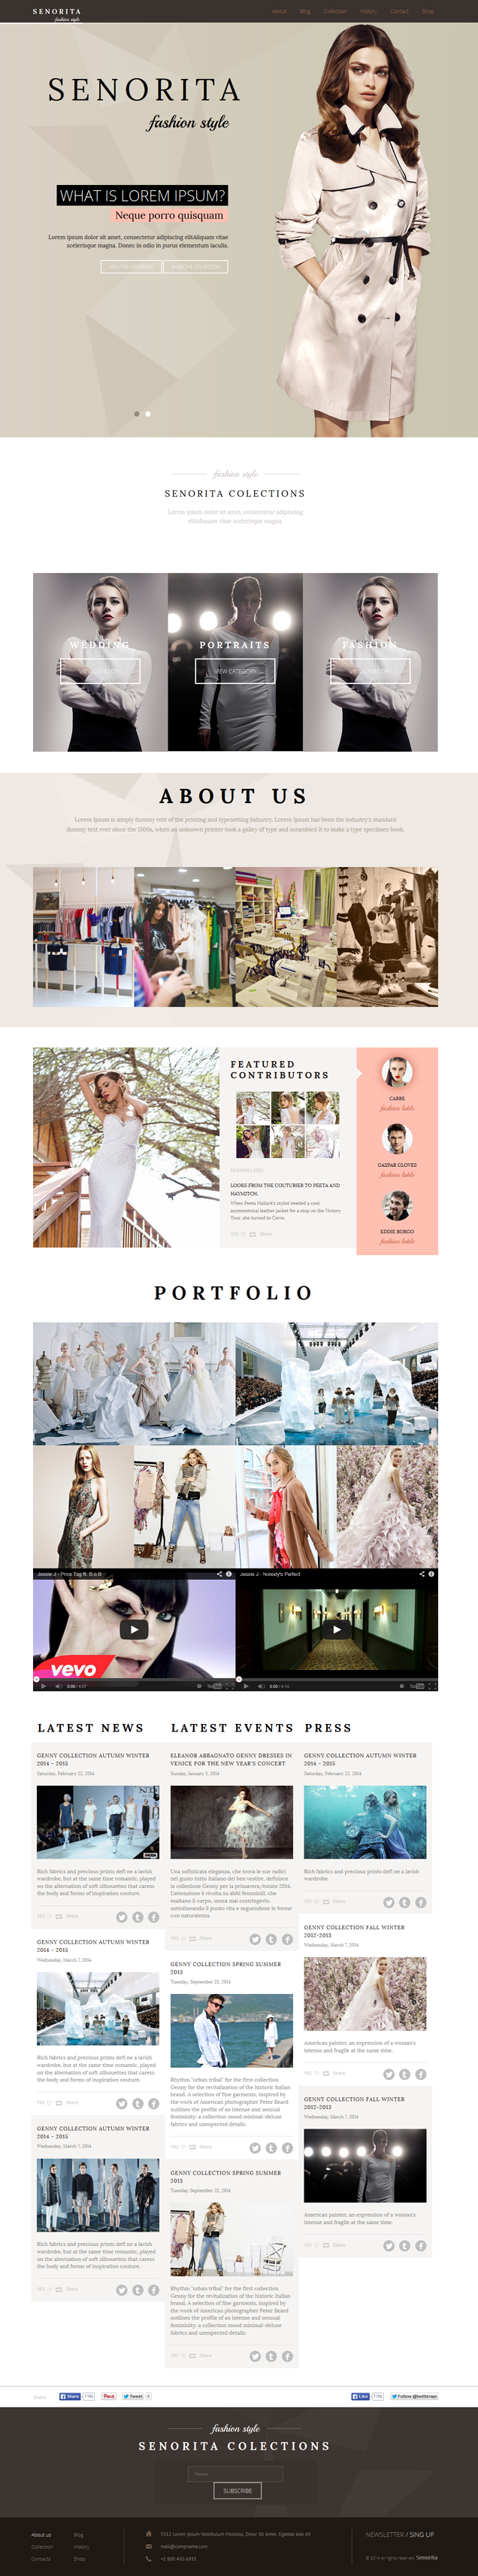 Senorita Responsive HTML Template – was designed for gossip, fashion and celebrity websites. The ...